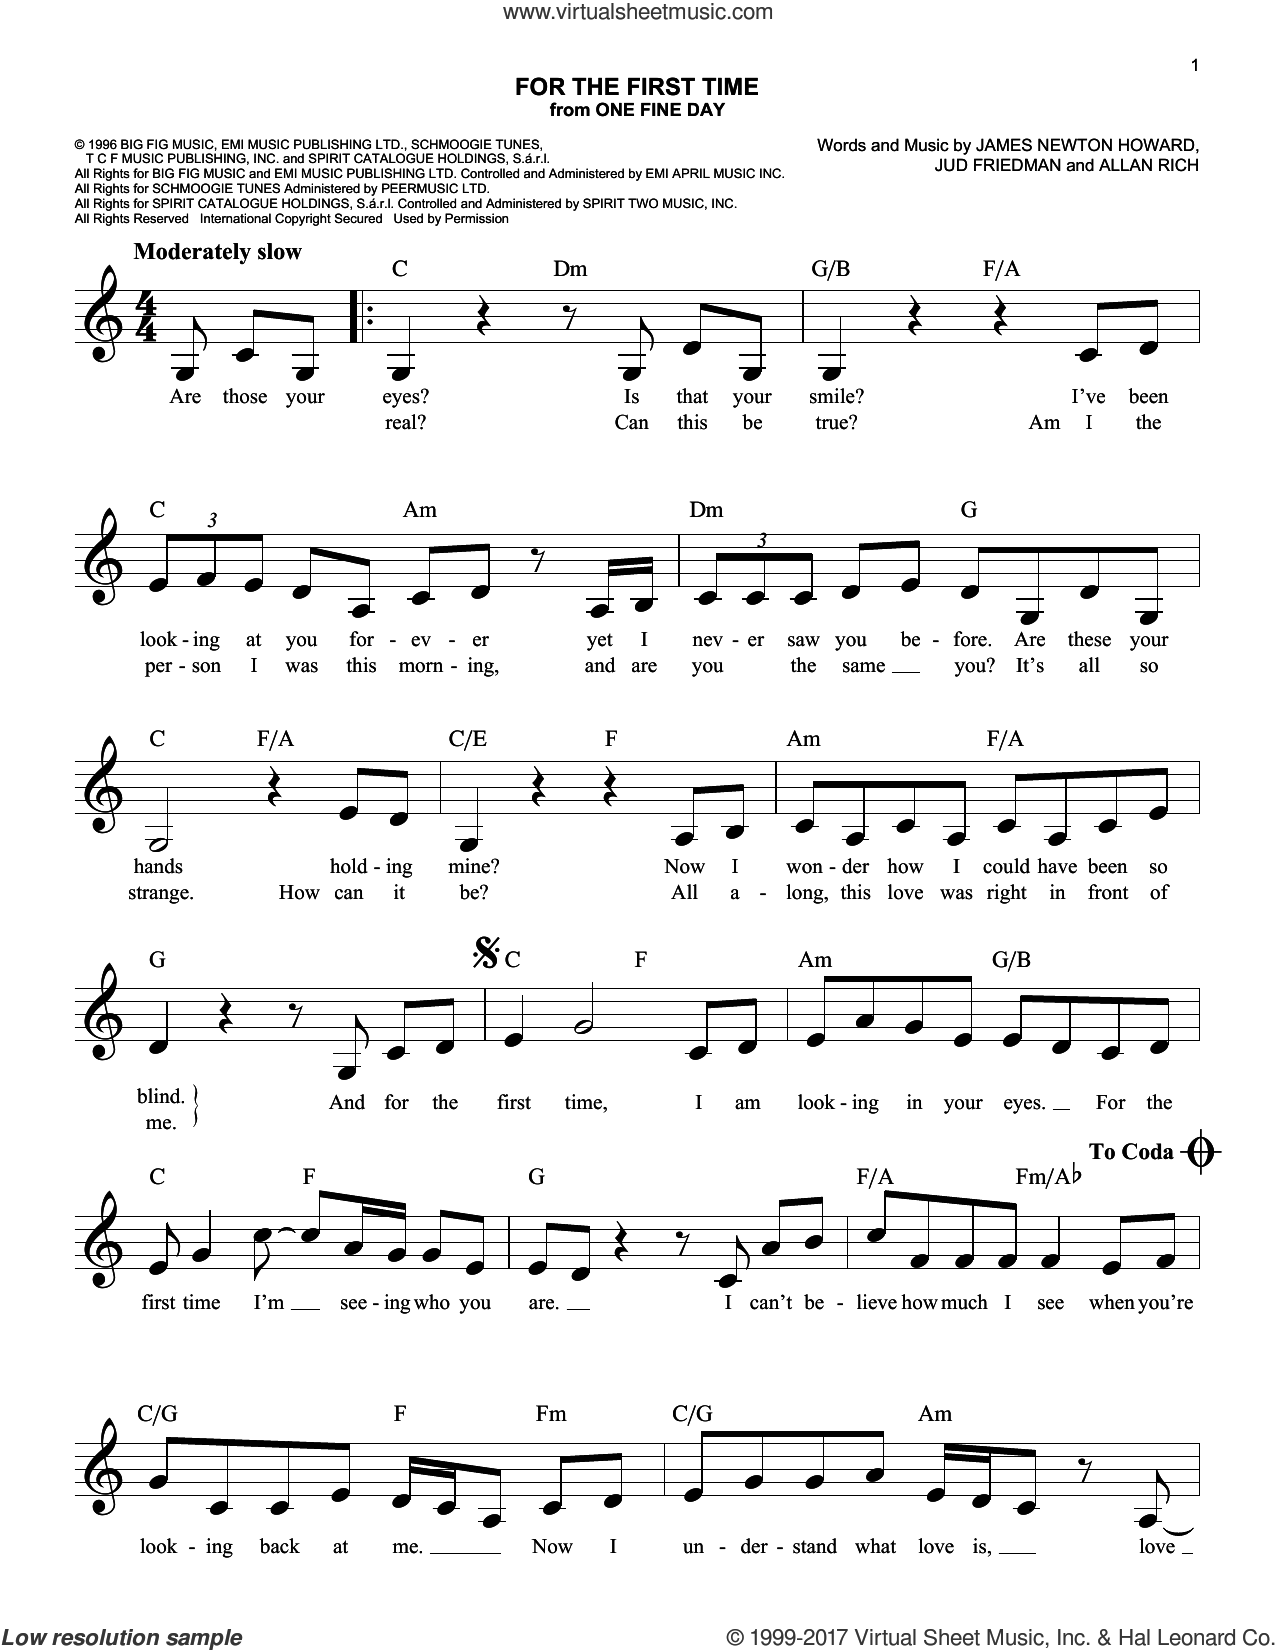 For The First Time sheet music for voice and other instruments (fake book) by Kenny Loggins, Rod Stewart, Allan Rich, James Newton Howard and Jud Friedman, intermediate skill level